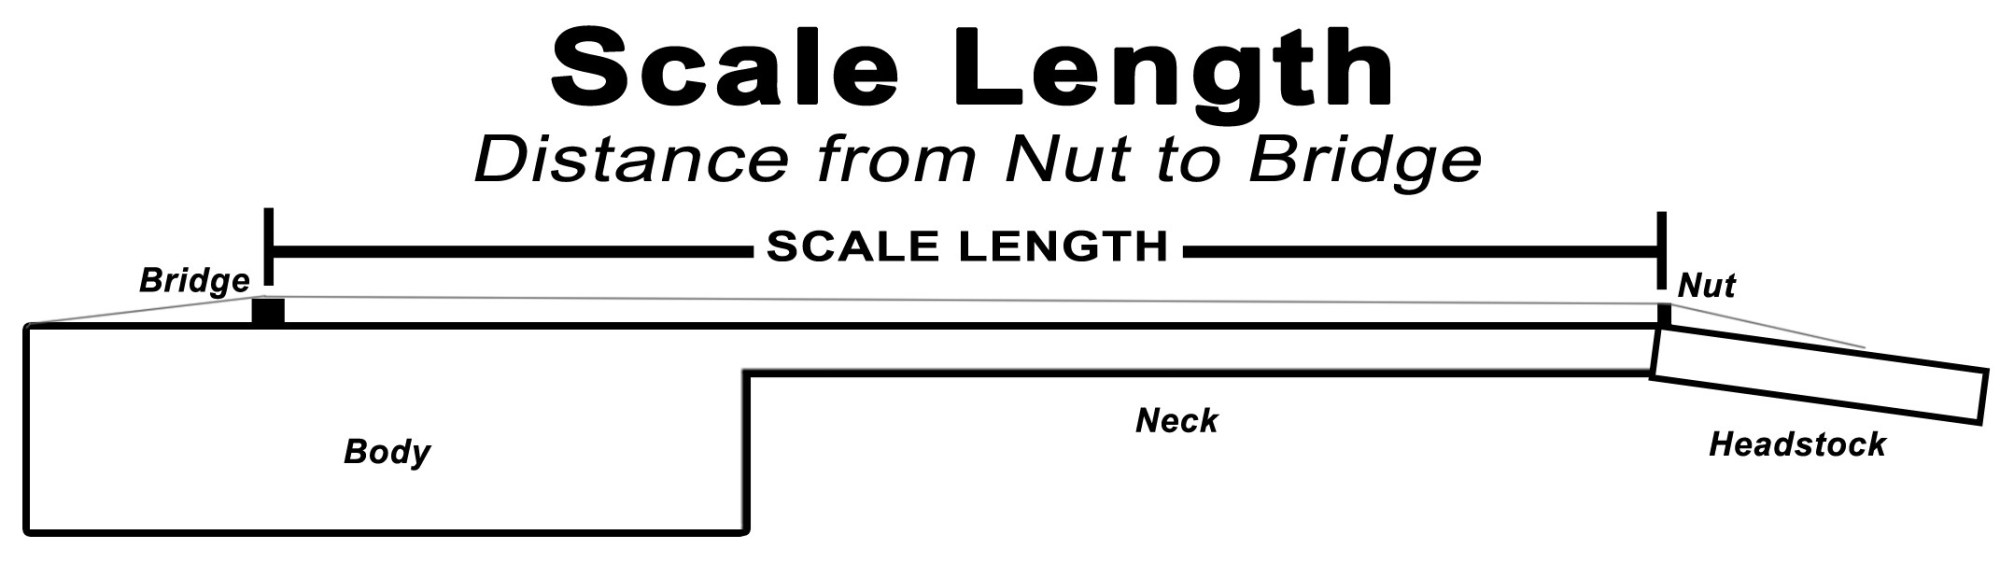 hight resolution of scale length diagram